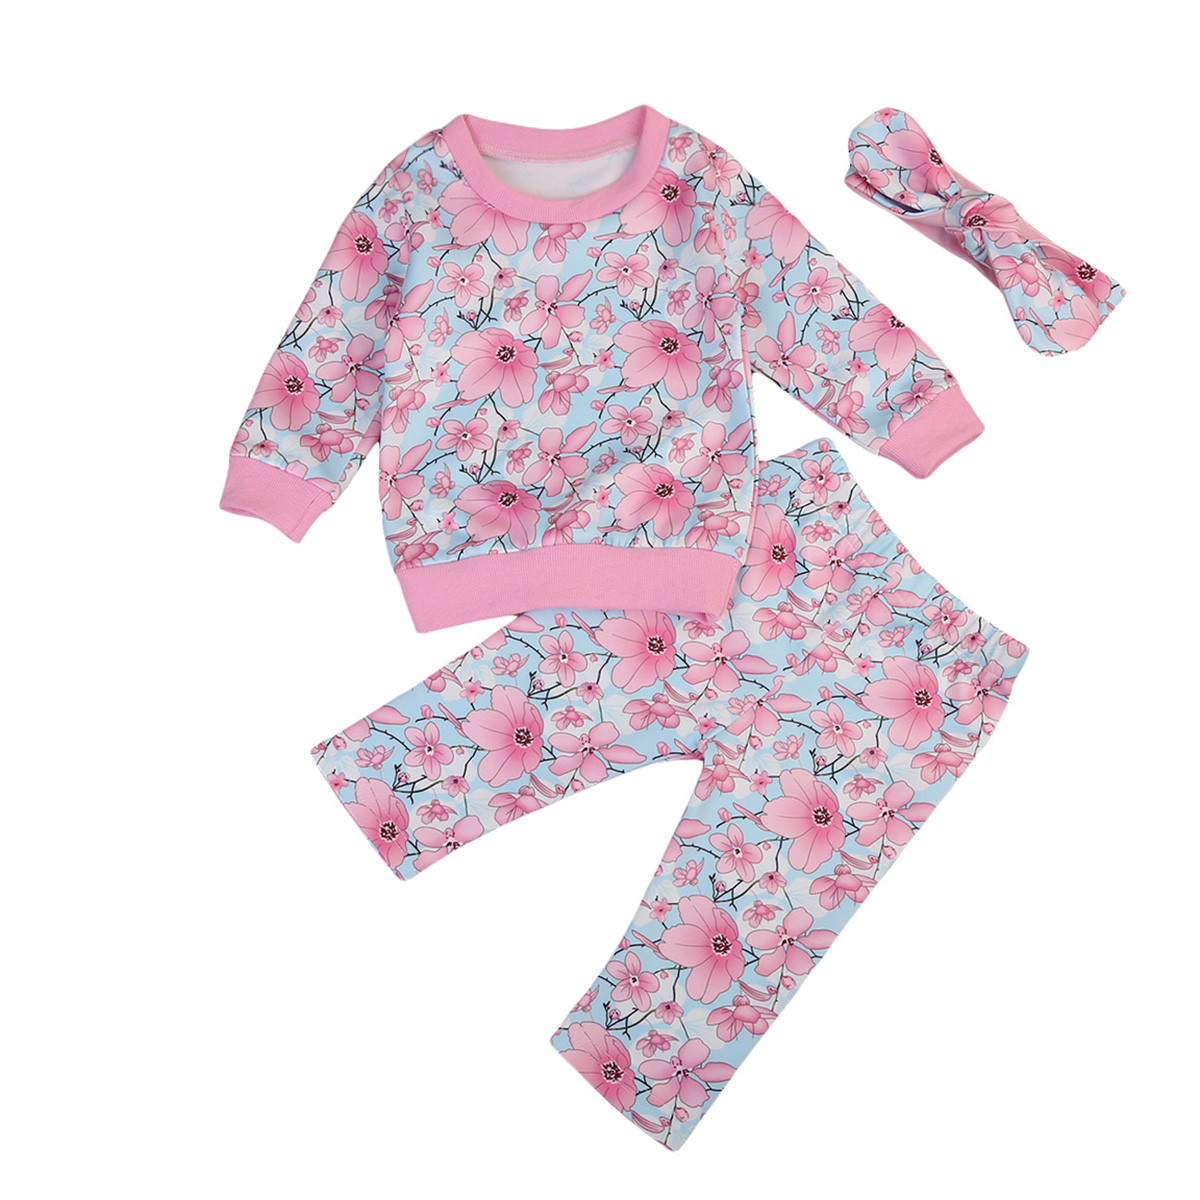 Baby Kids Boys Girls Flower Xmas Child Pjs Sleepsuit Sleepwear Pajamas Nightwear